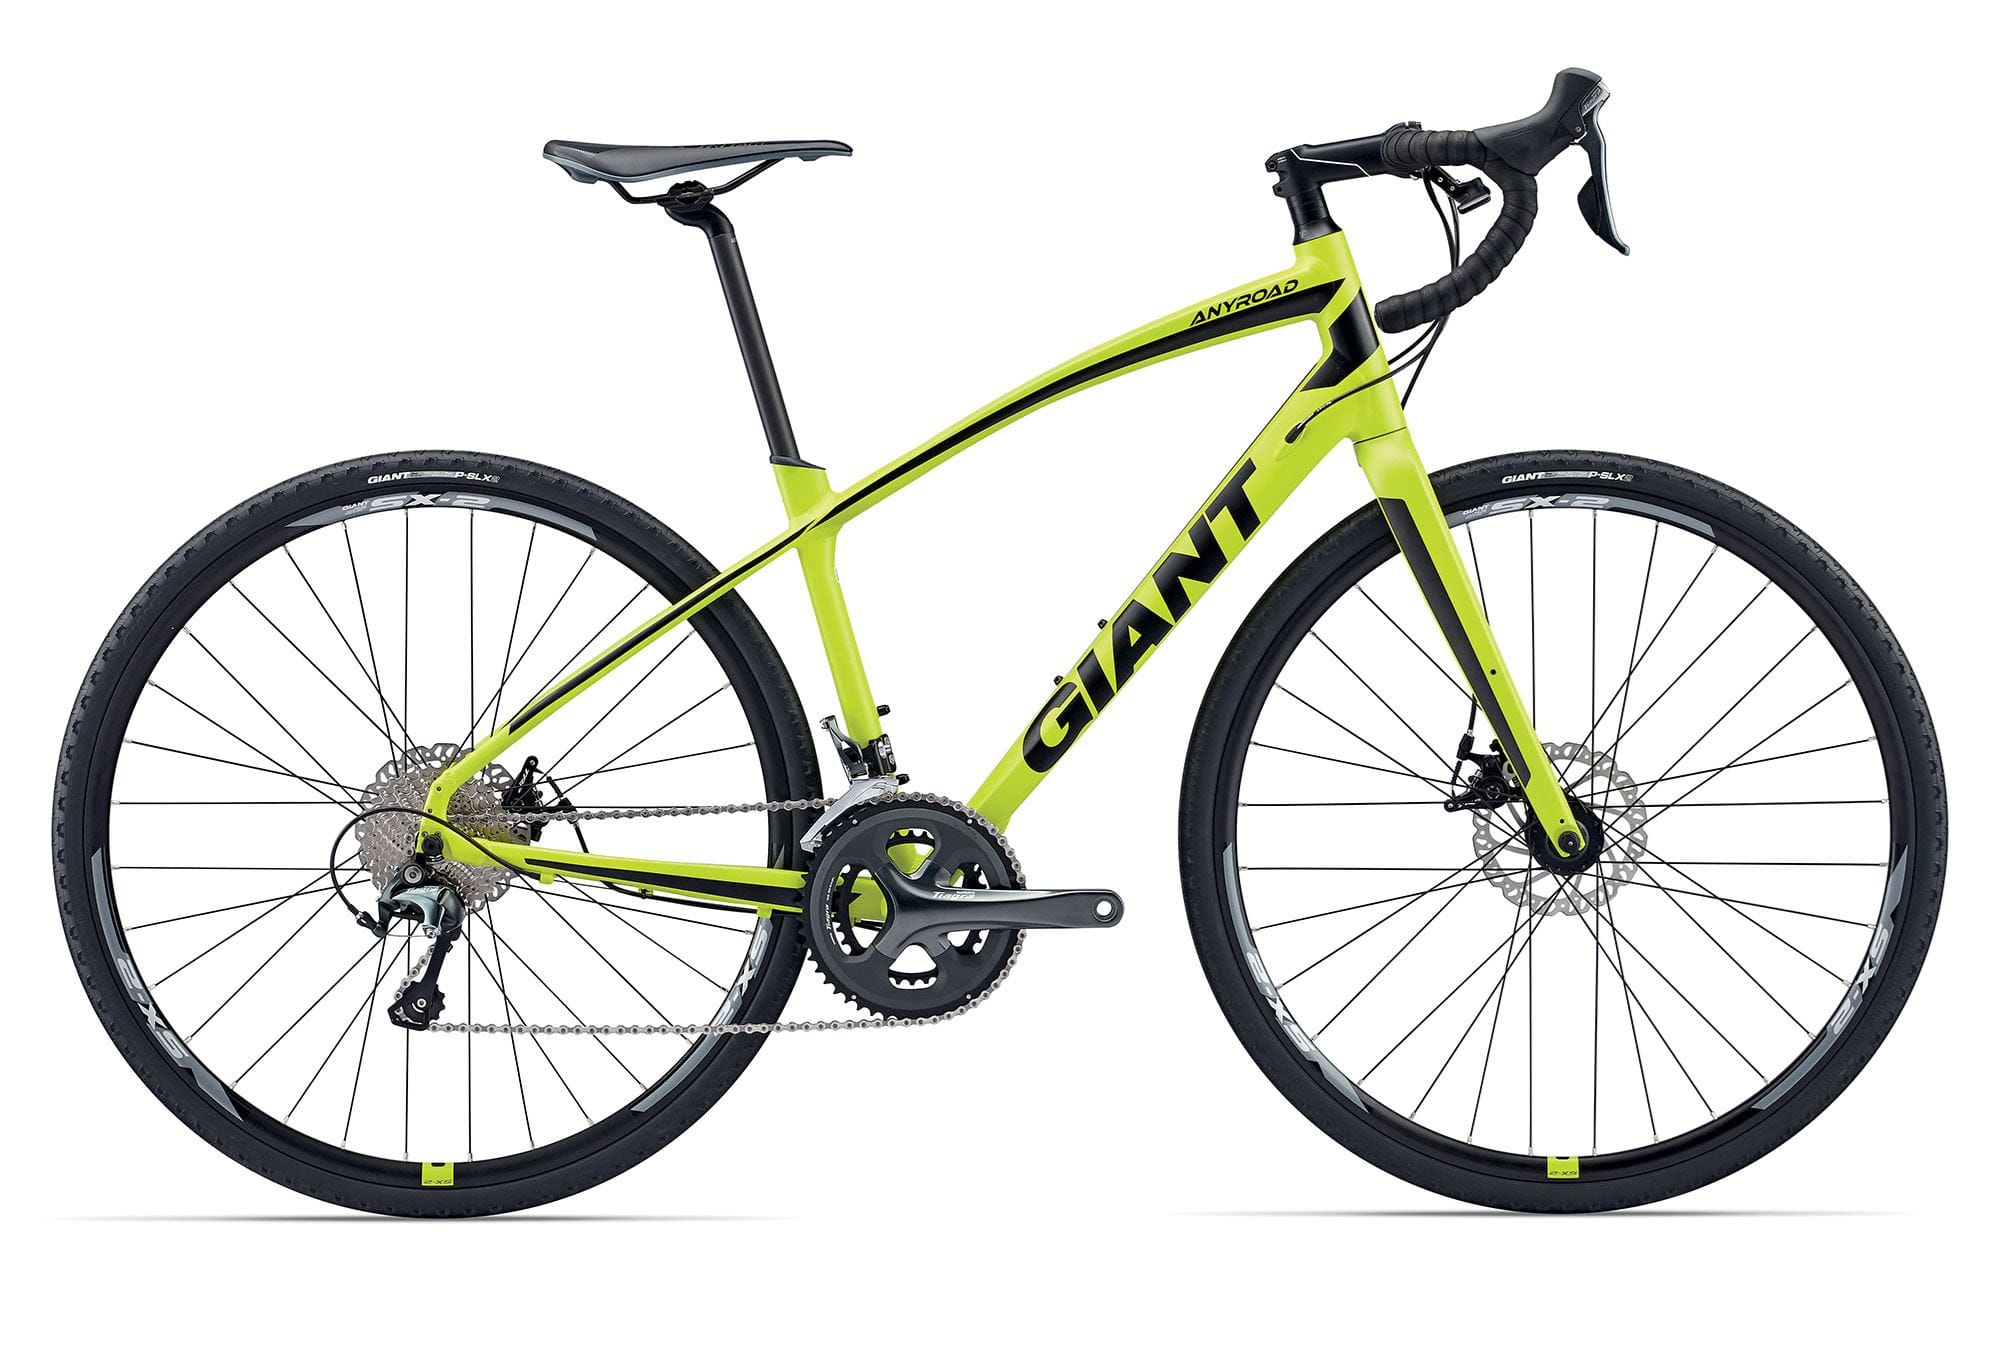 Bridge Cycles providing Bicycles, Mountain Bikes, Road Bikes, Cycling Gear and Expert Advice for over 25 years.